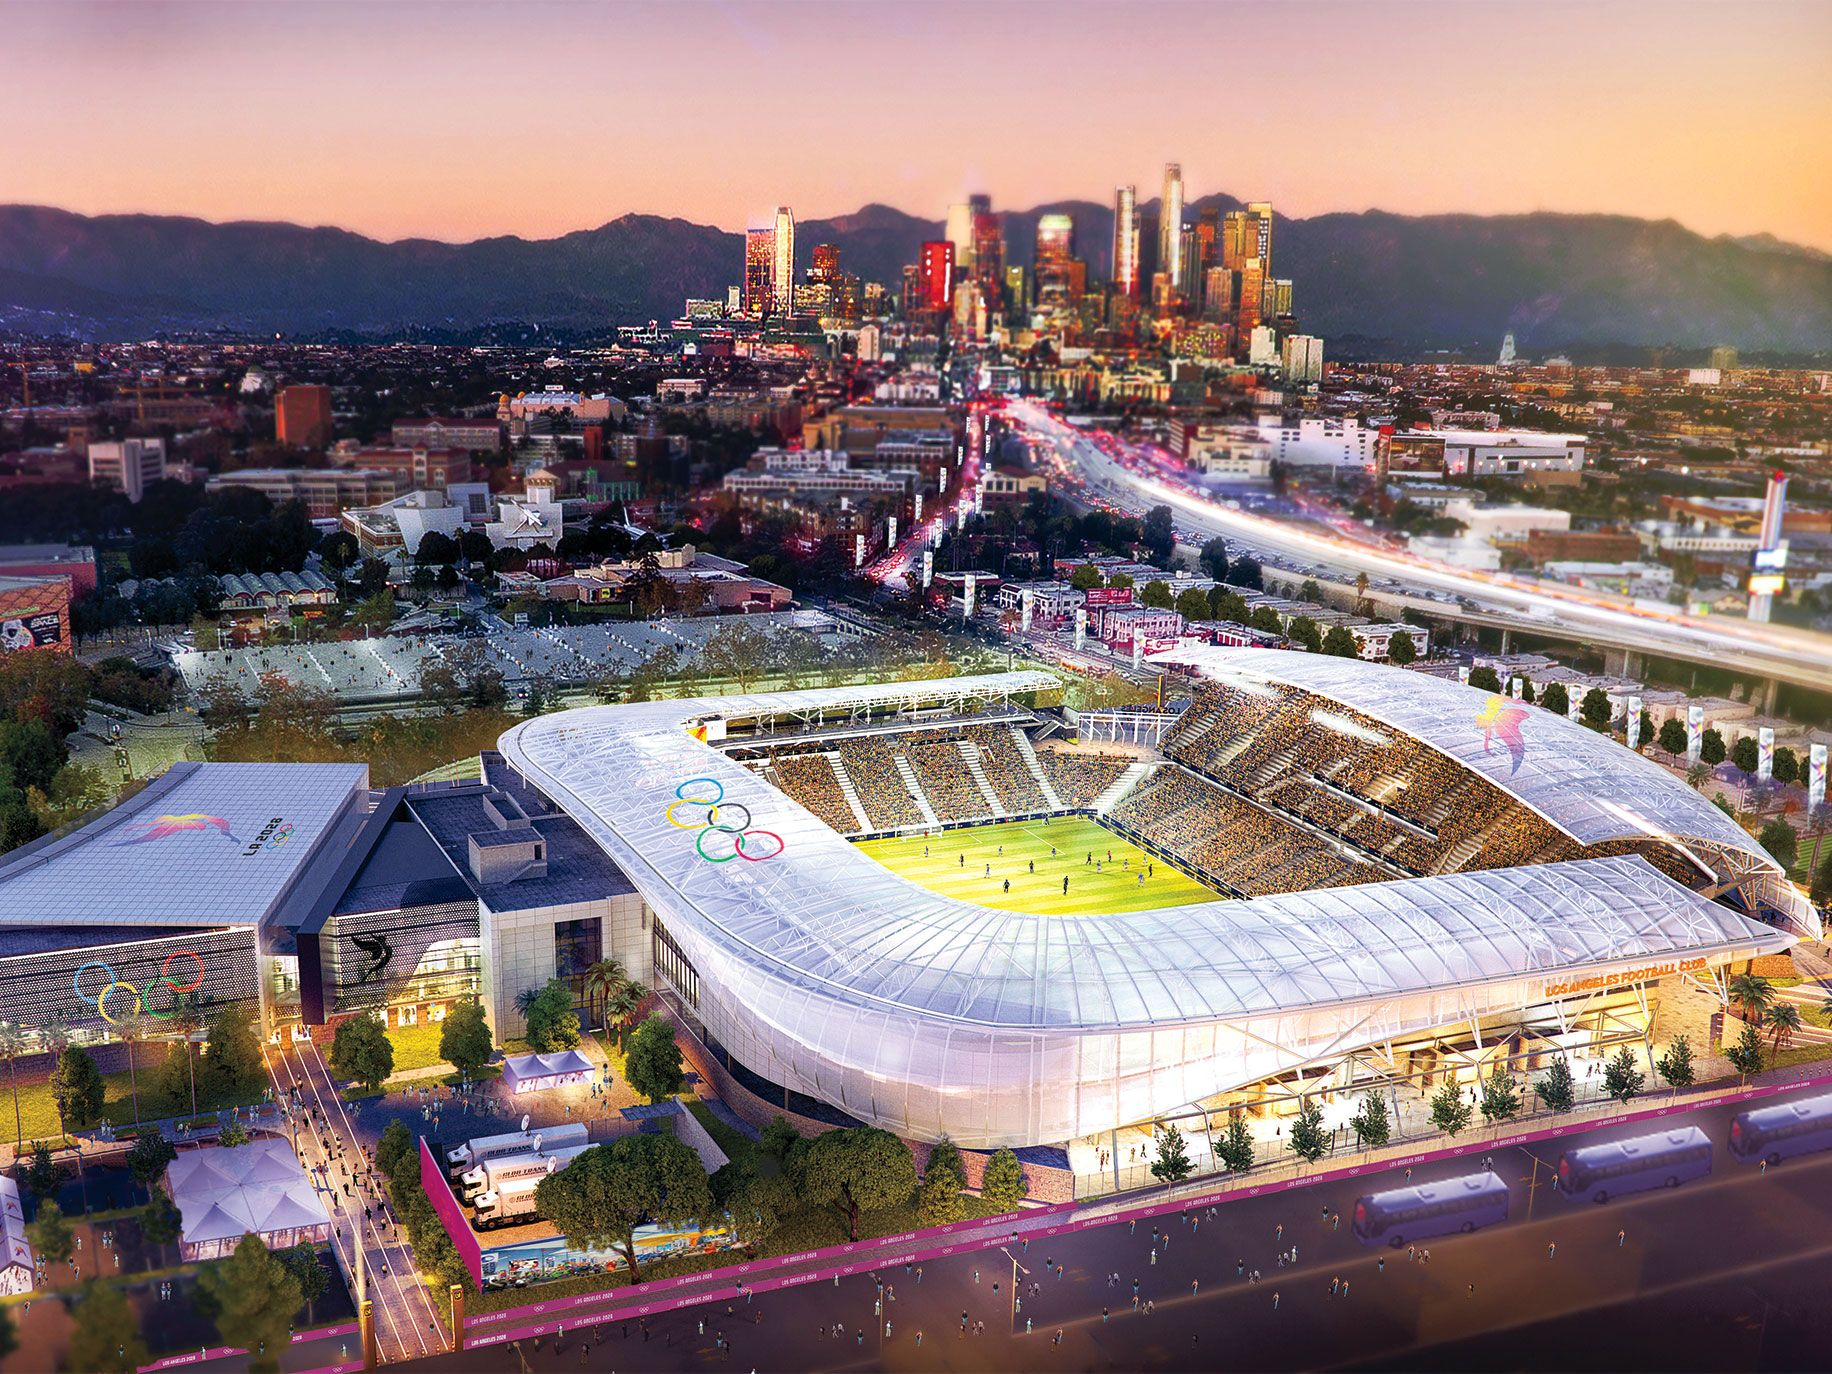 A rendering that shows the Banc of California Stadium, which is being built in Exposition Park. The arena will be one of multiple locations in the Los Angeles area that will be repurposed for the 2028 Olympic Games.